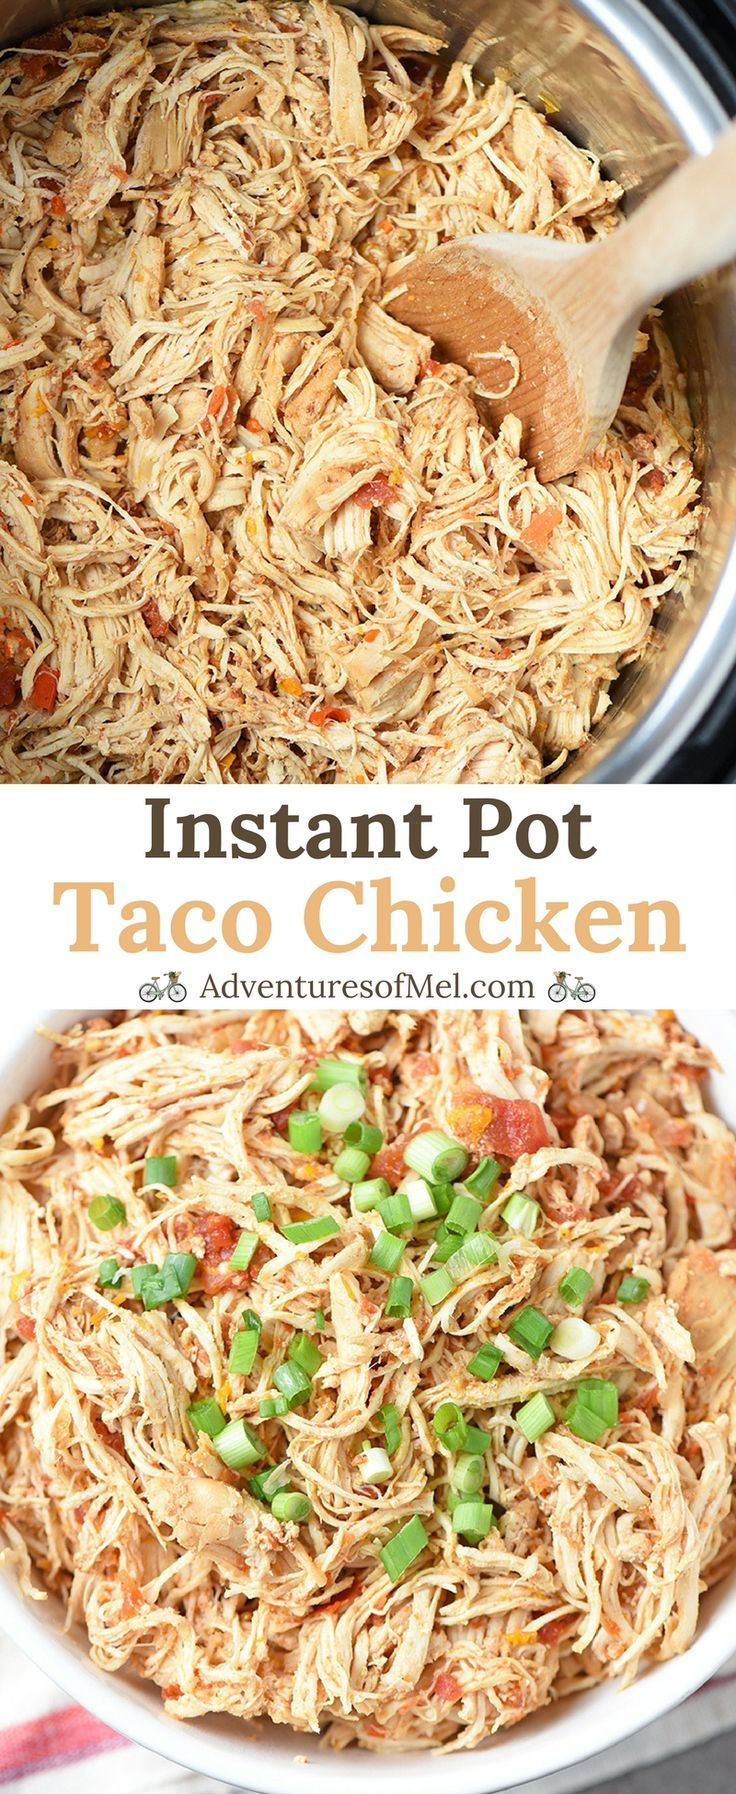 Instant Pot Taco Chicken, homemade with spices and seasonings, fresh pepper and onion, and other flavorful ingredients. Easy to make recipe you can use for tacos, enchiladas, and more. #InstantPot #chicken #tacotuesday #enchiladas #nachos #easyrecipes #dinner